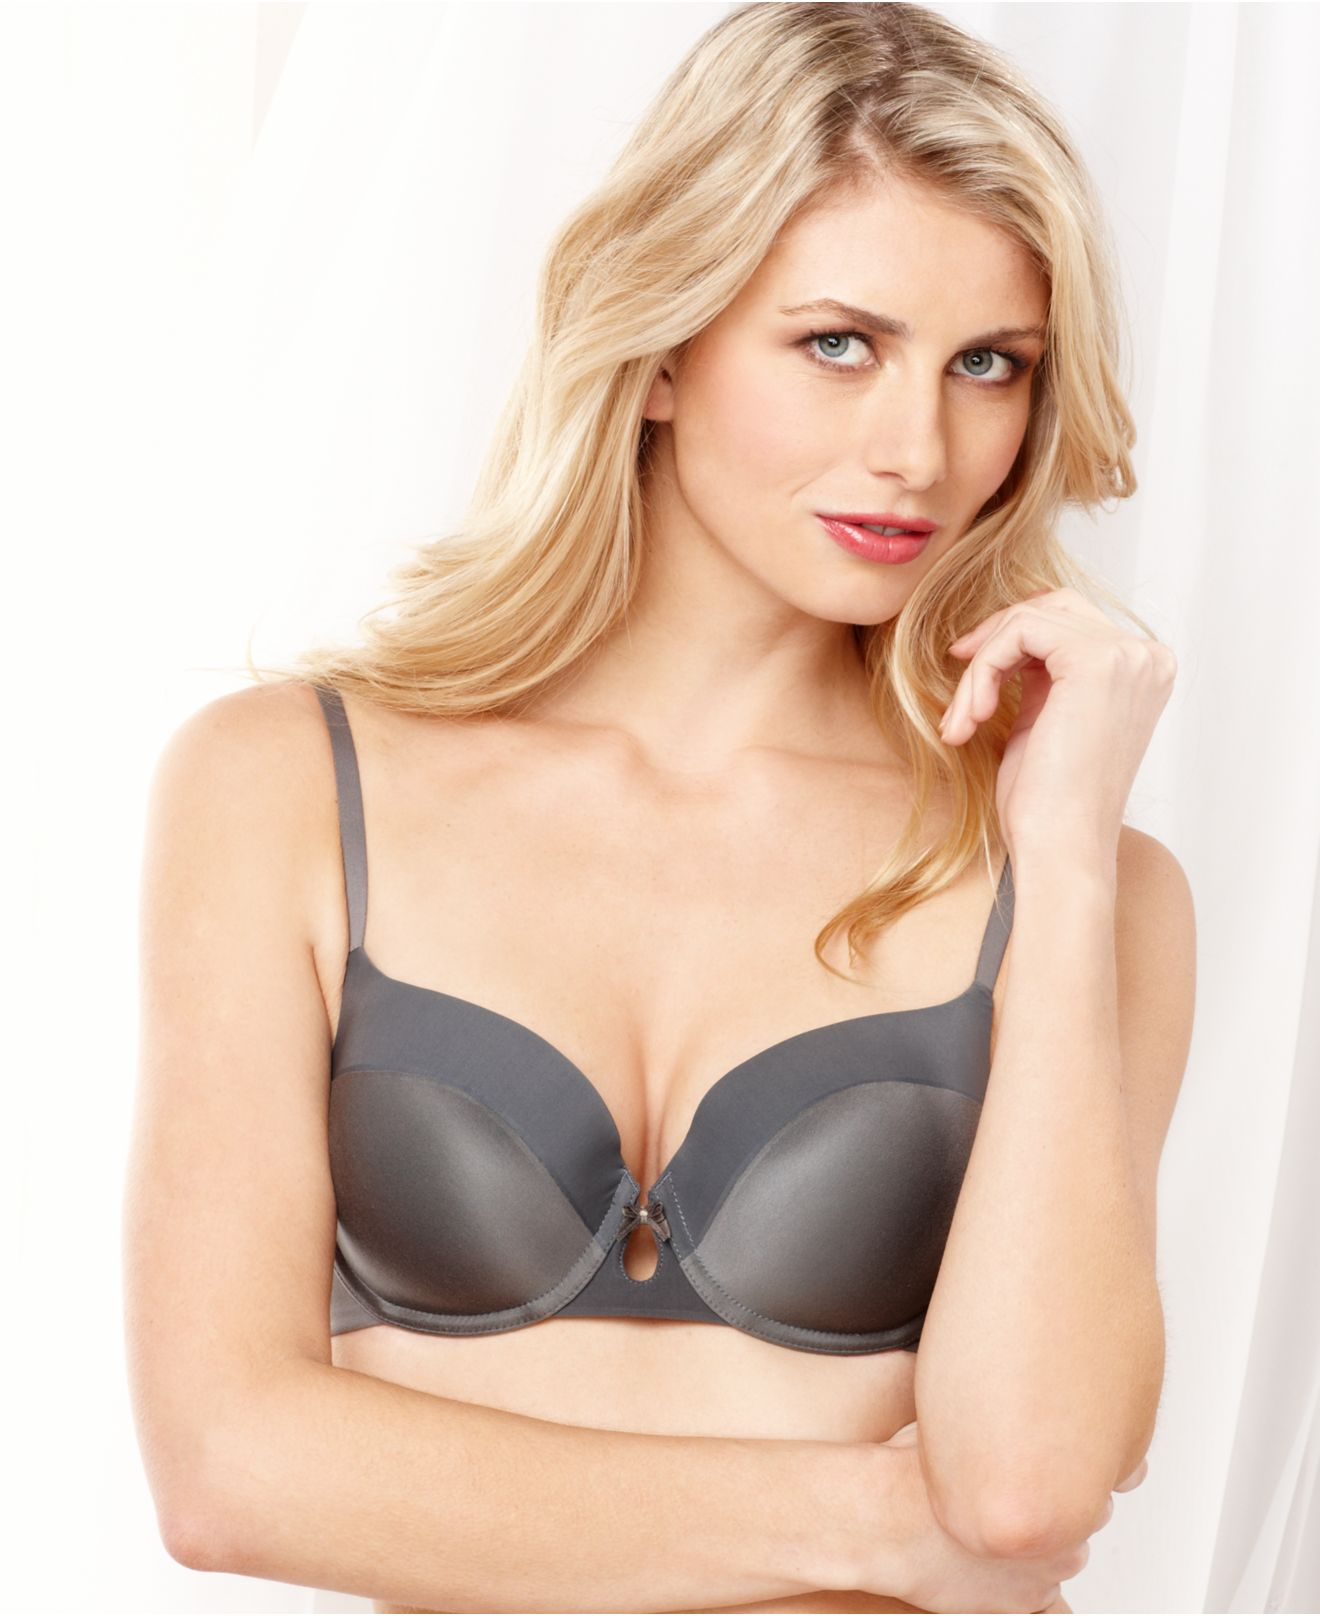 b094f6811 Lyst - DKNY Fusion Perfect Coverage T-shirt Bra 453200 in Gray